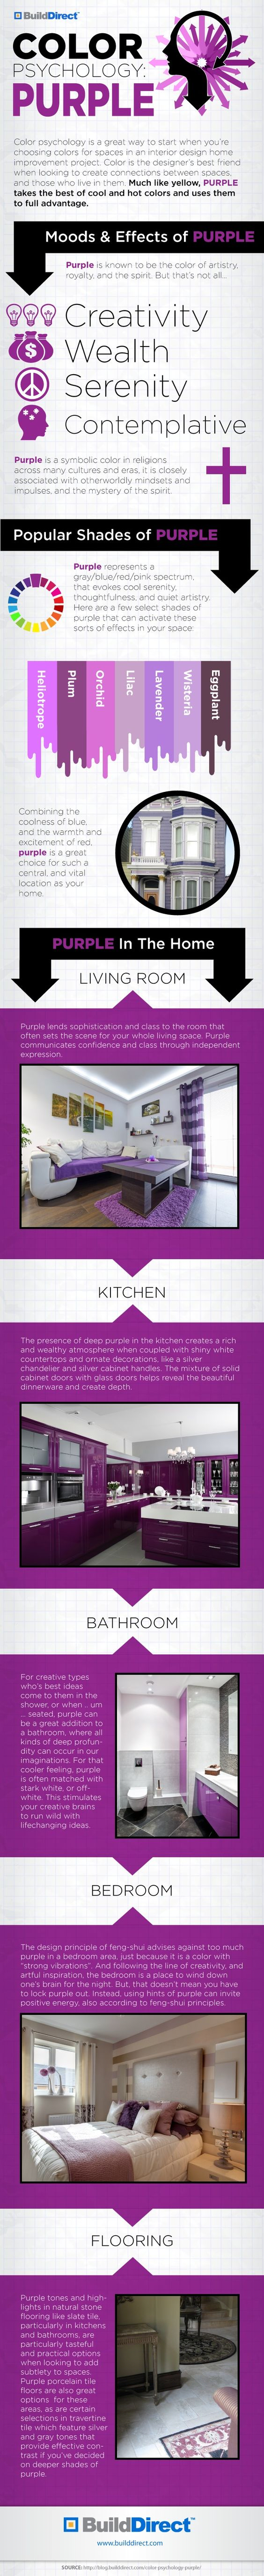 Emotional Interior Design Using Purple Psychology Interiors and